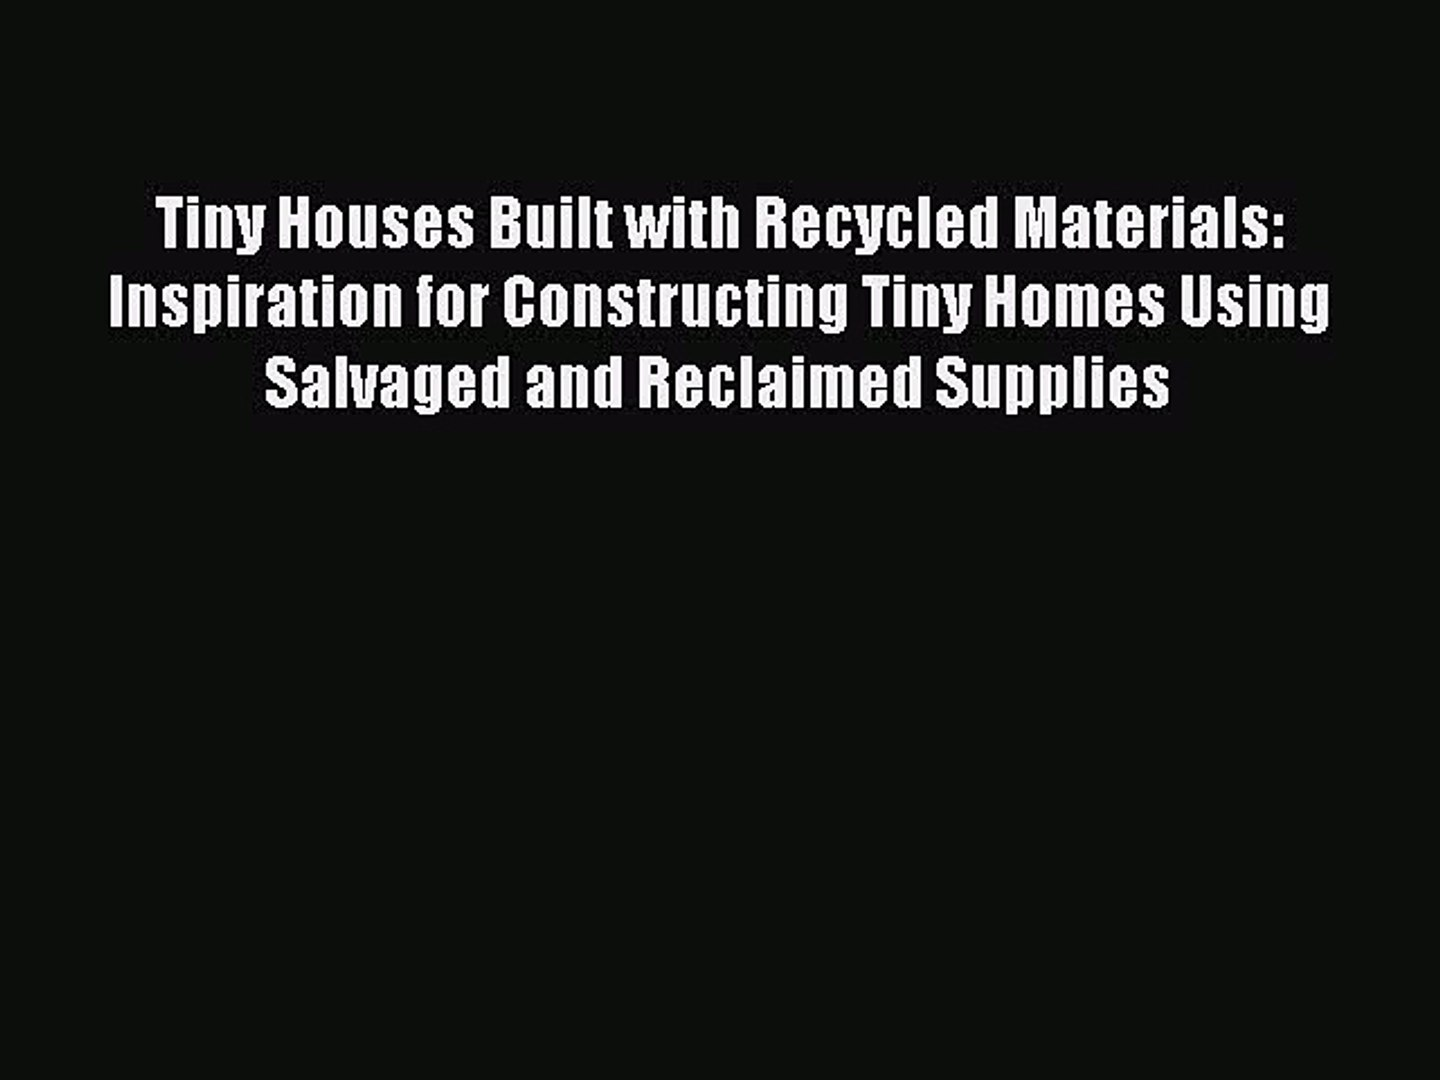 Tiny Houses Built with Recycled Materials Inspiration for Constructing Tiny Homes Using Salvaged and Reclaimed Supplies